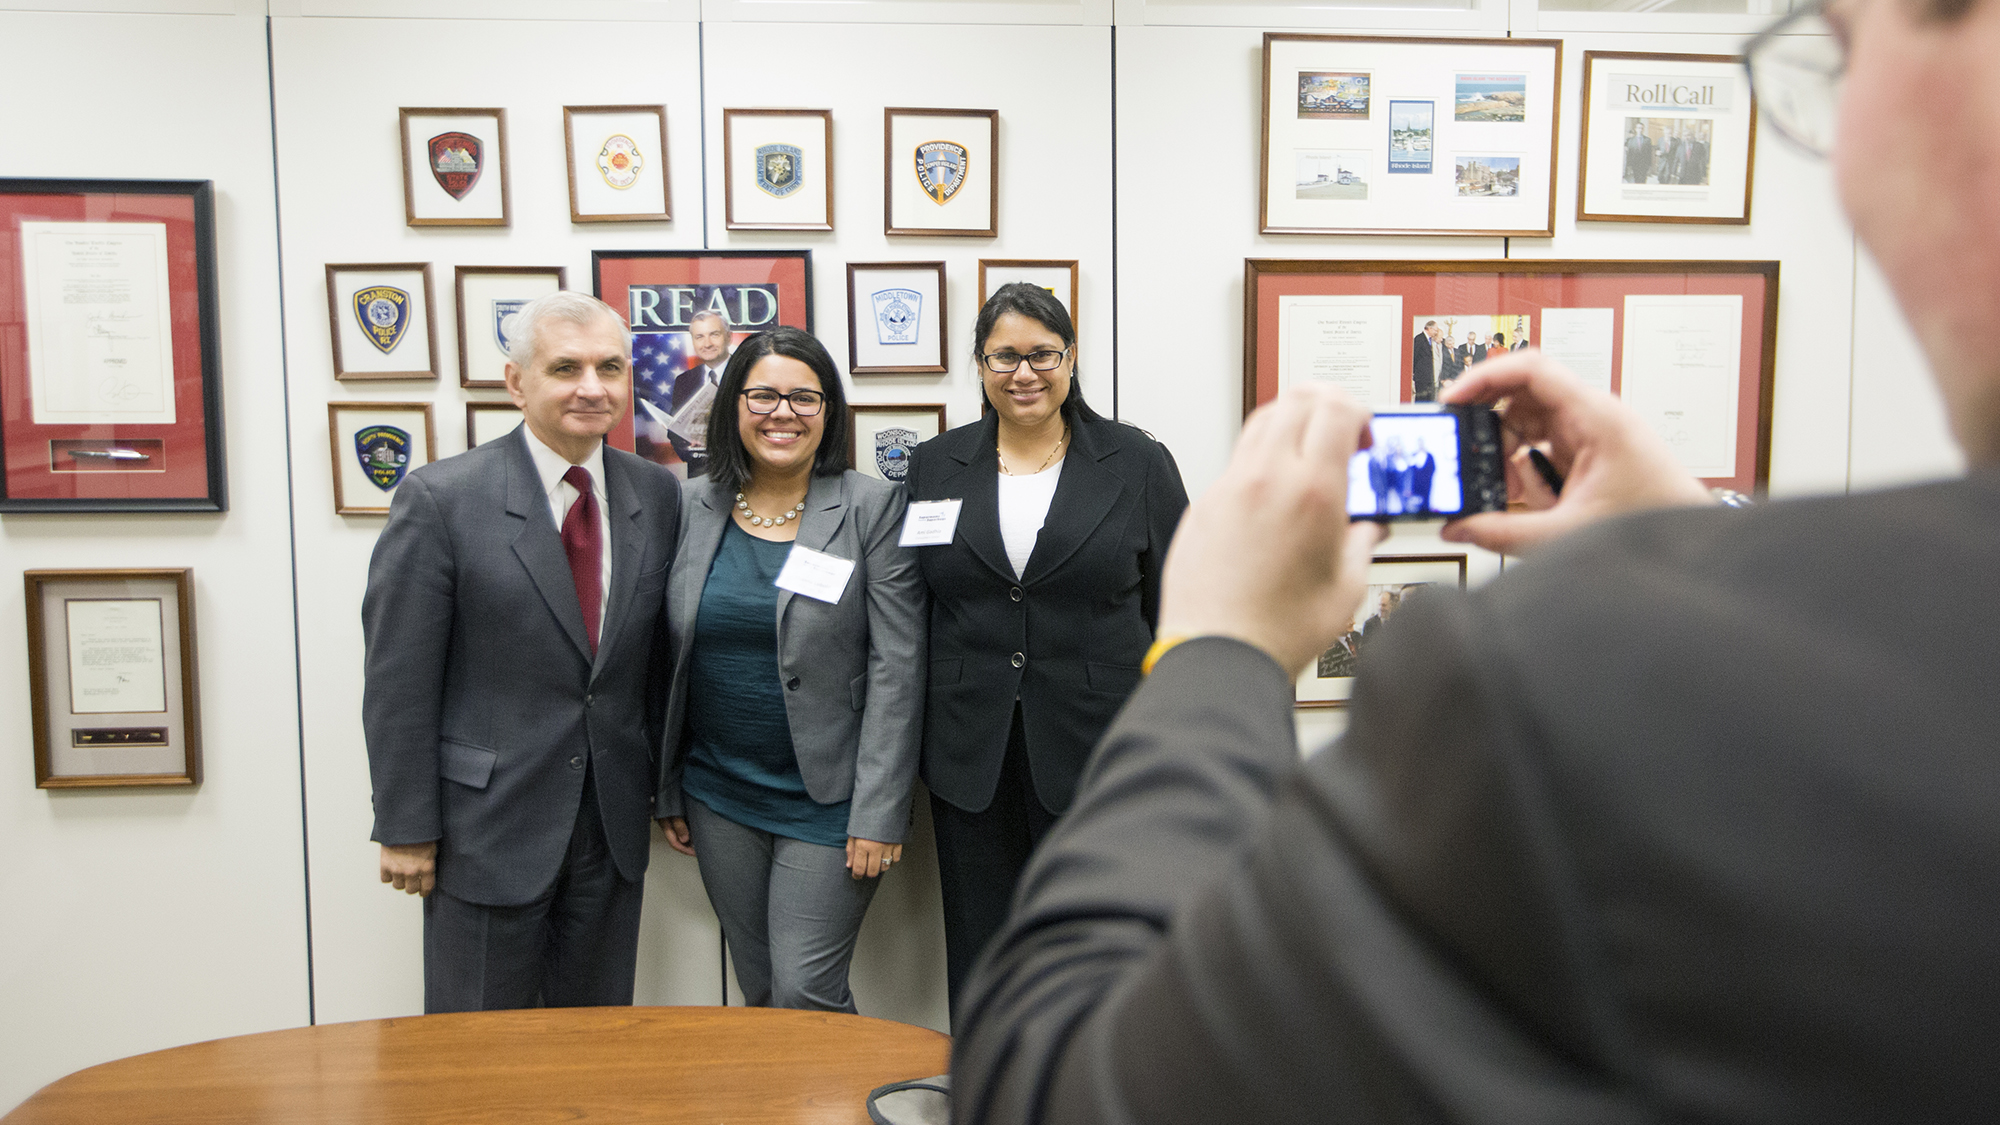 Supermom Shanna Lubold (center) and Ami Gadhia of the March of Dimes pose with Senator Jack Reed (D-RI). Lubold's son, Samuel, was born prematurely, and during his 14-week stay in the neonatal intensive care unit, he developed a staphylococcal infection, putting his already weak lungs in peril. With the help of antibiotics, he overcame his illness and is now a smart, healthy, and funny 3-year-old.